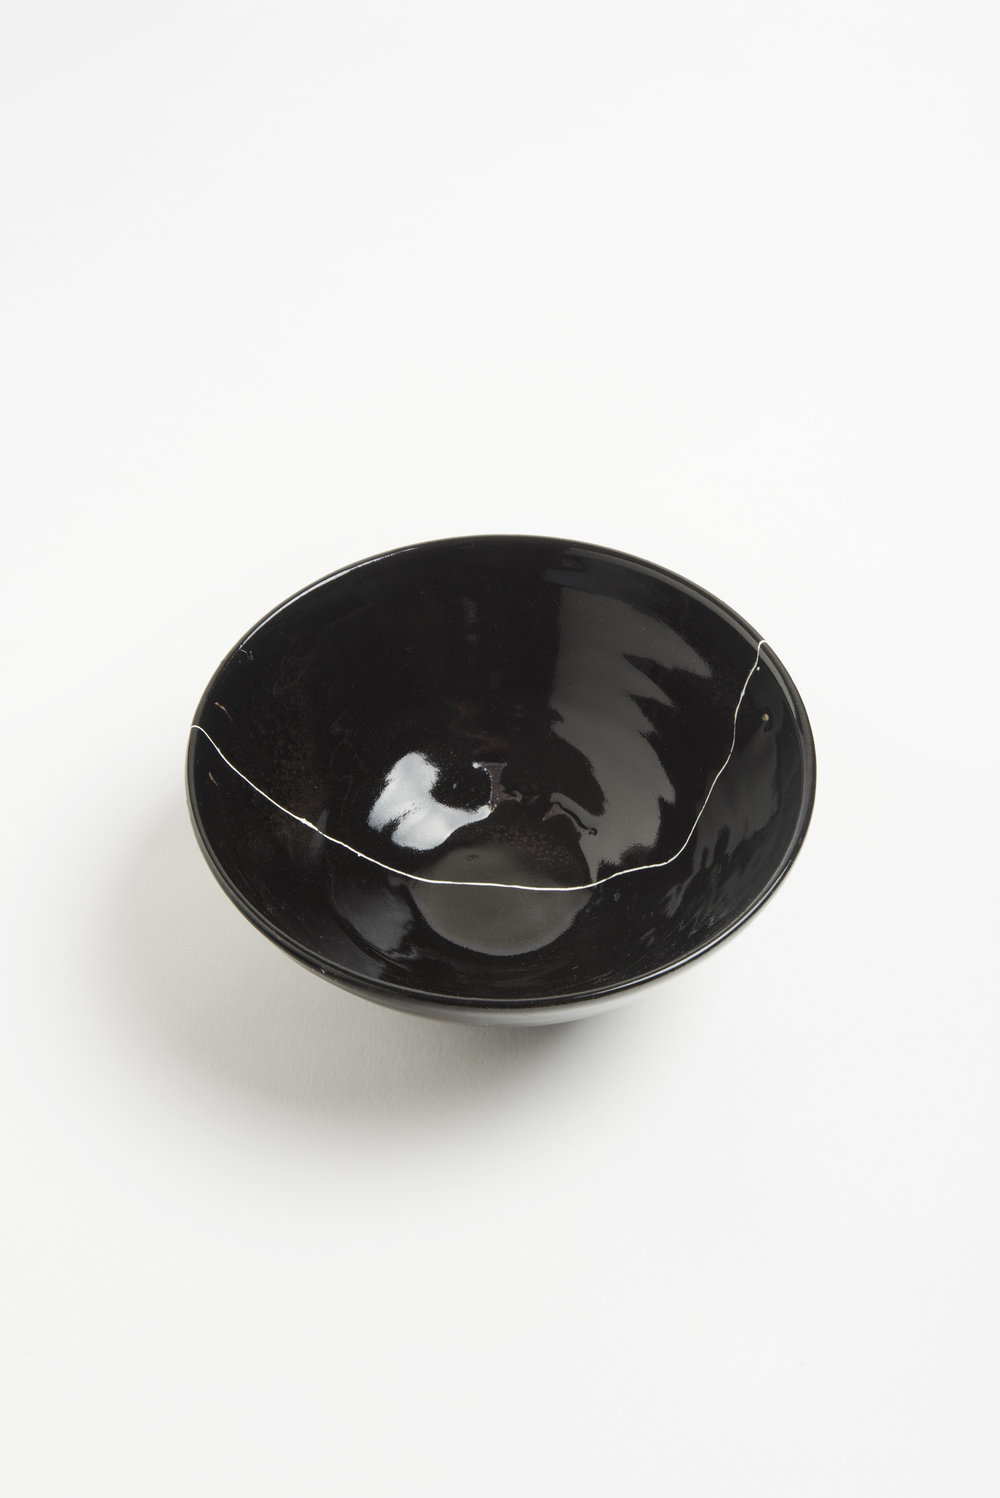 black-fracture-series-bowl-romy-northover-ceramics-the-garnered-46.jpg